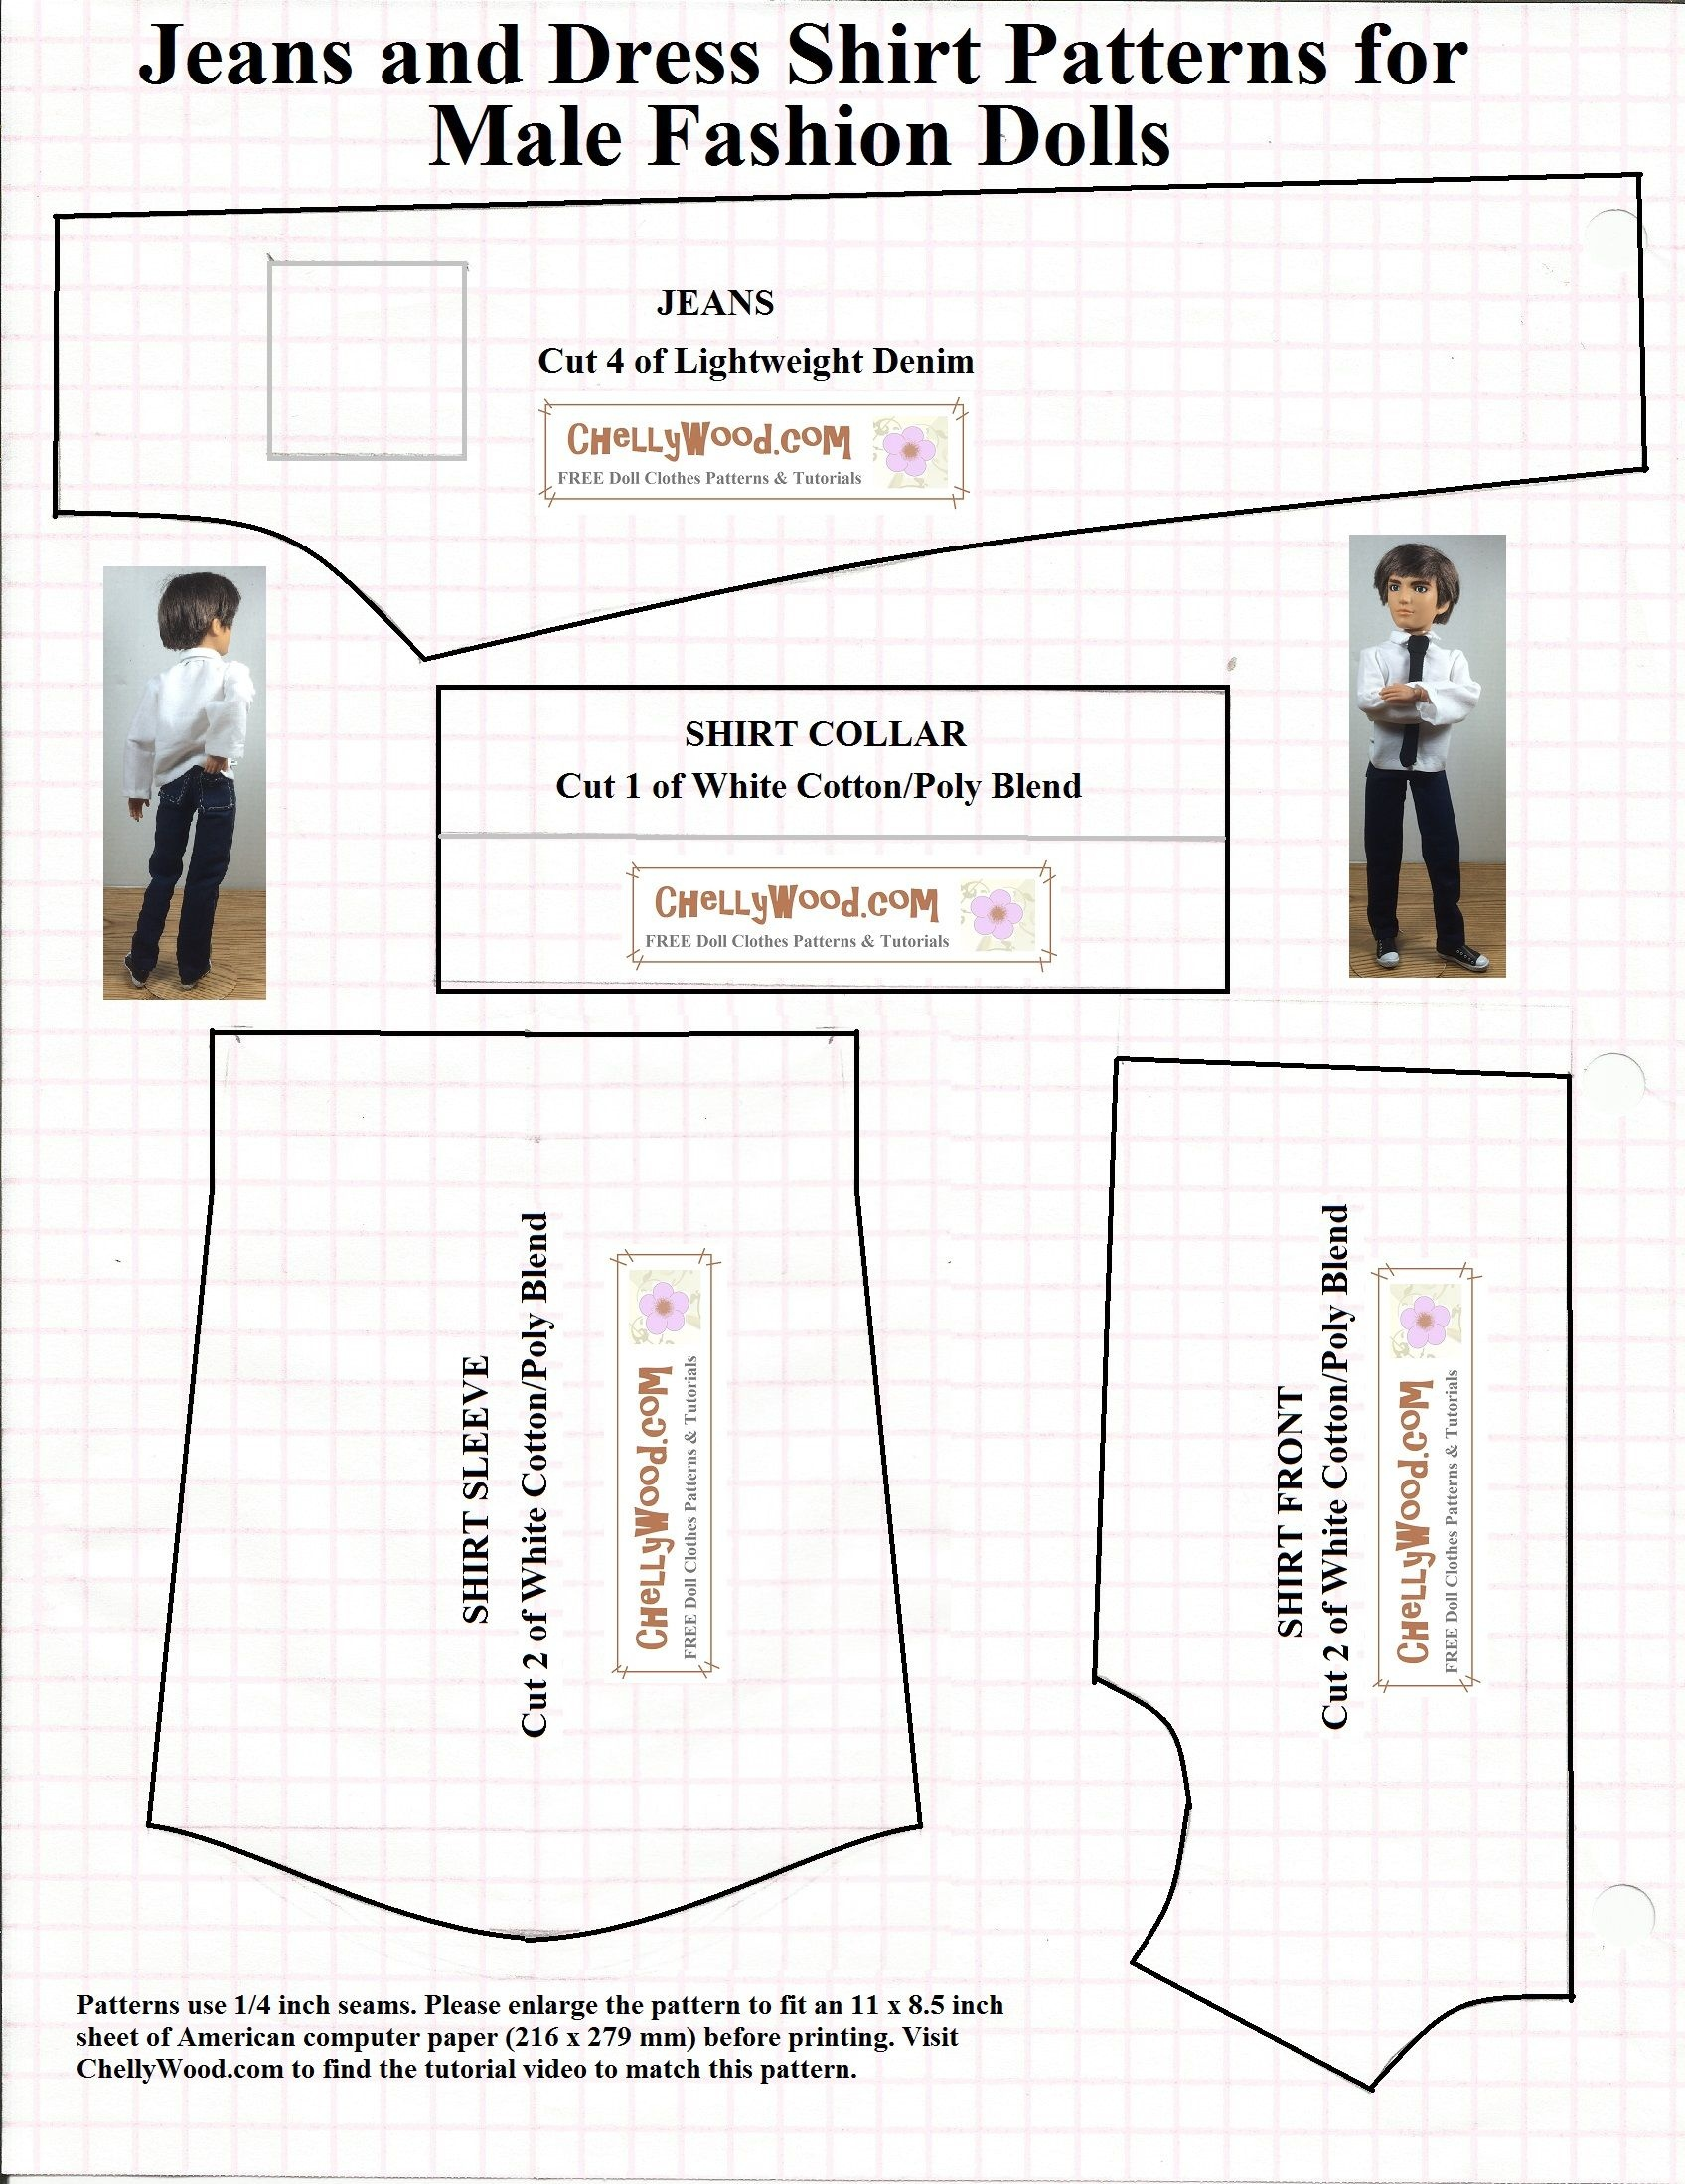 Free Printable Sewing Patterns For Dolls Of Many Shapes And Sizes - Ken Clothes Patterns Free Printable